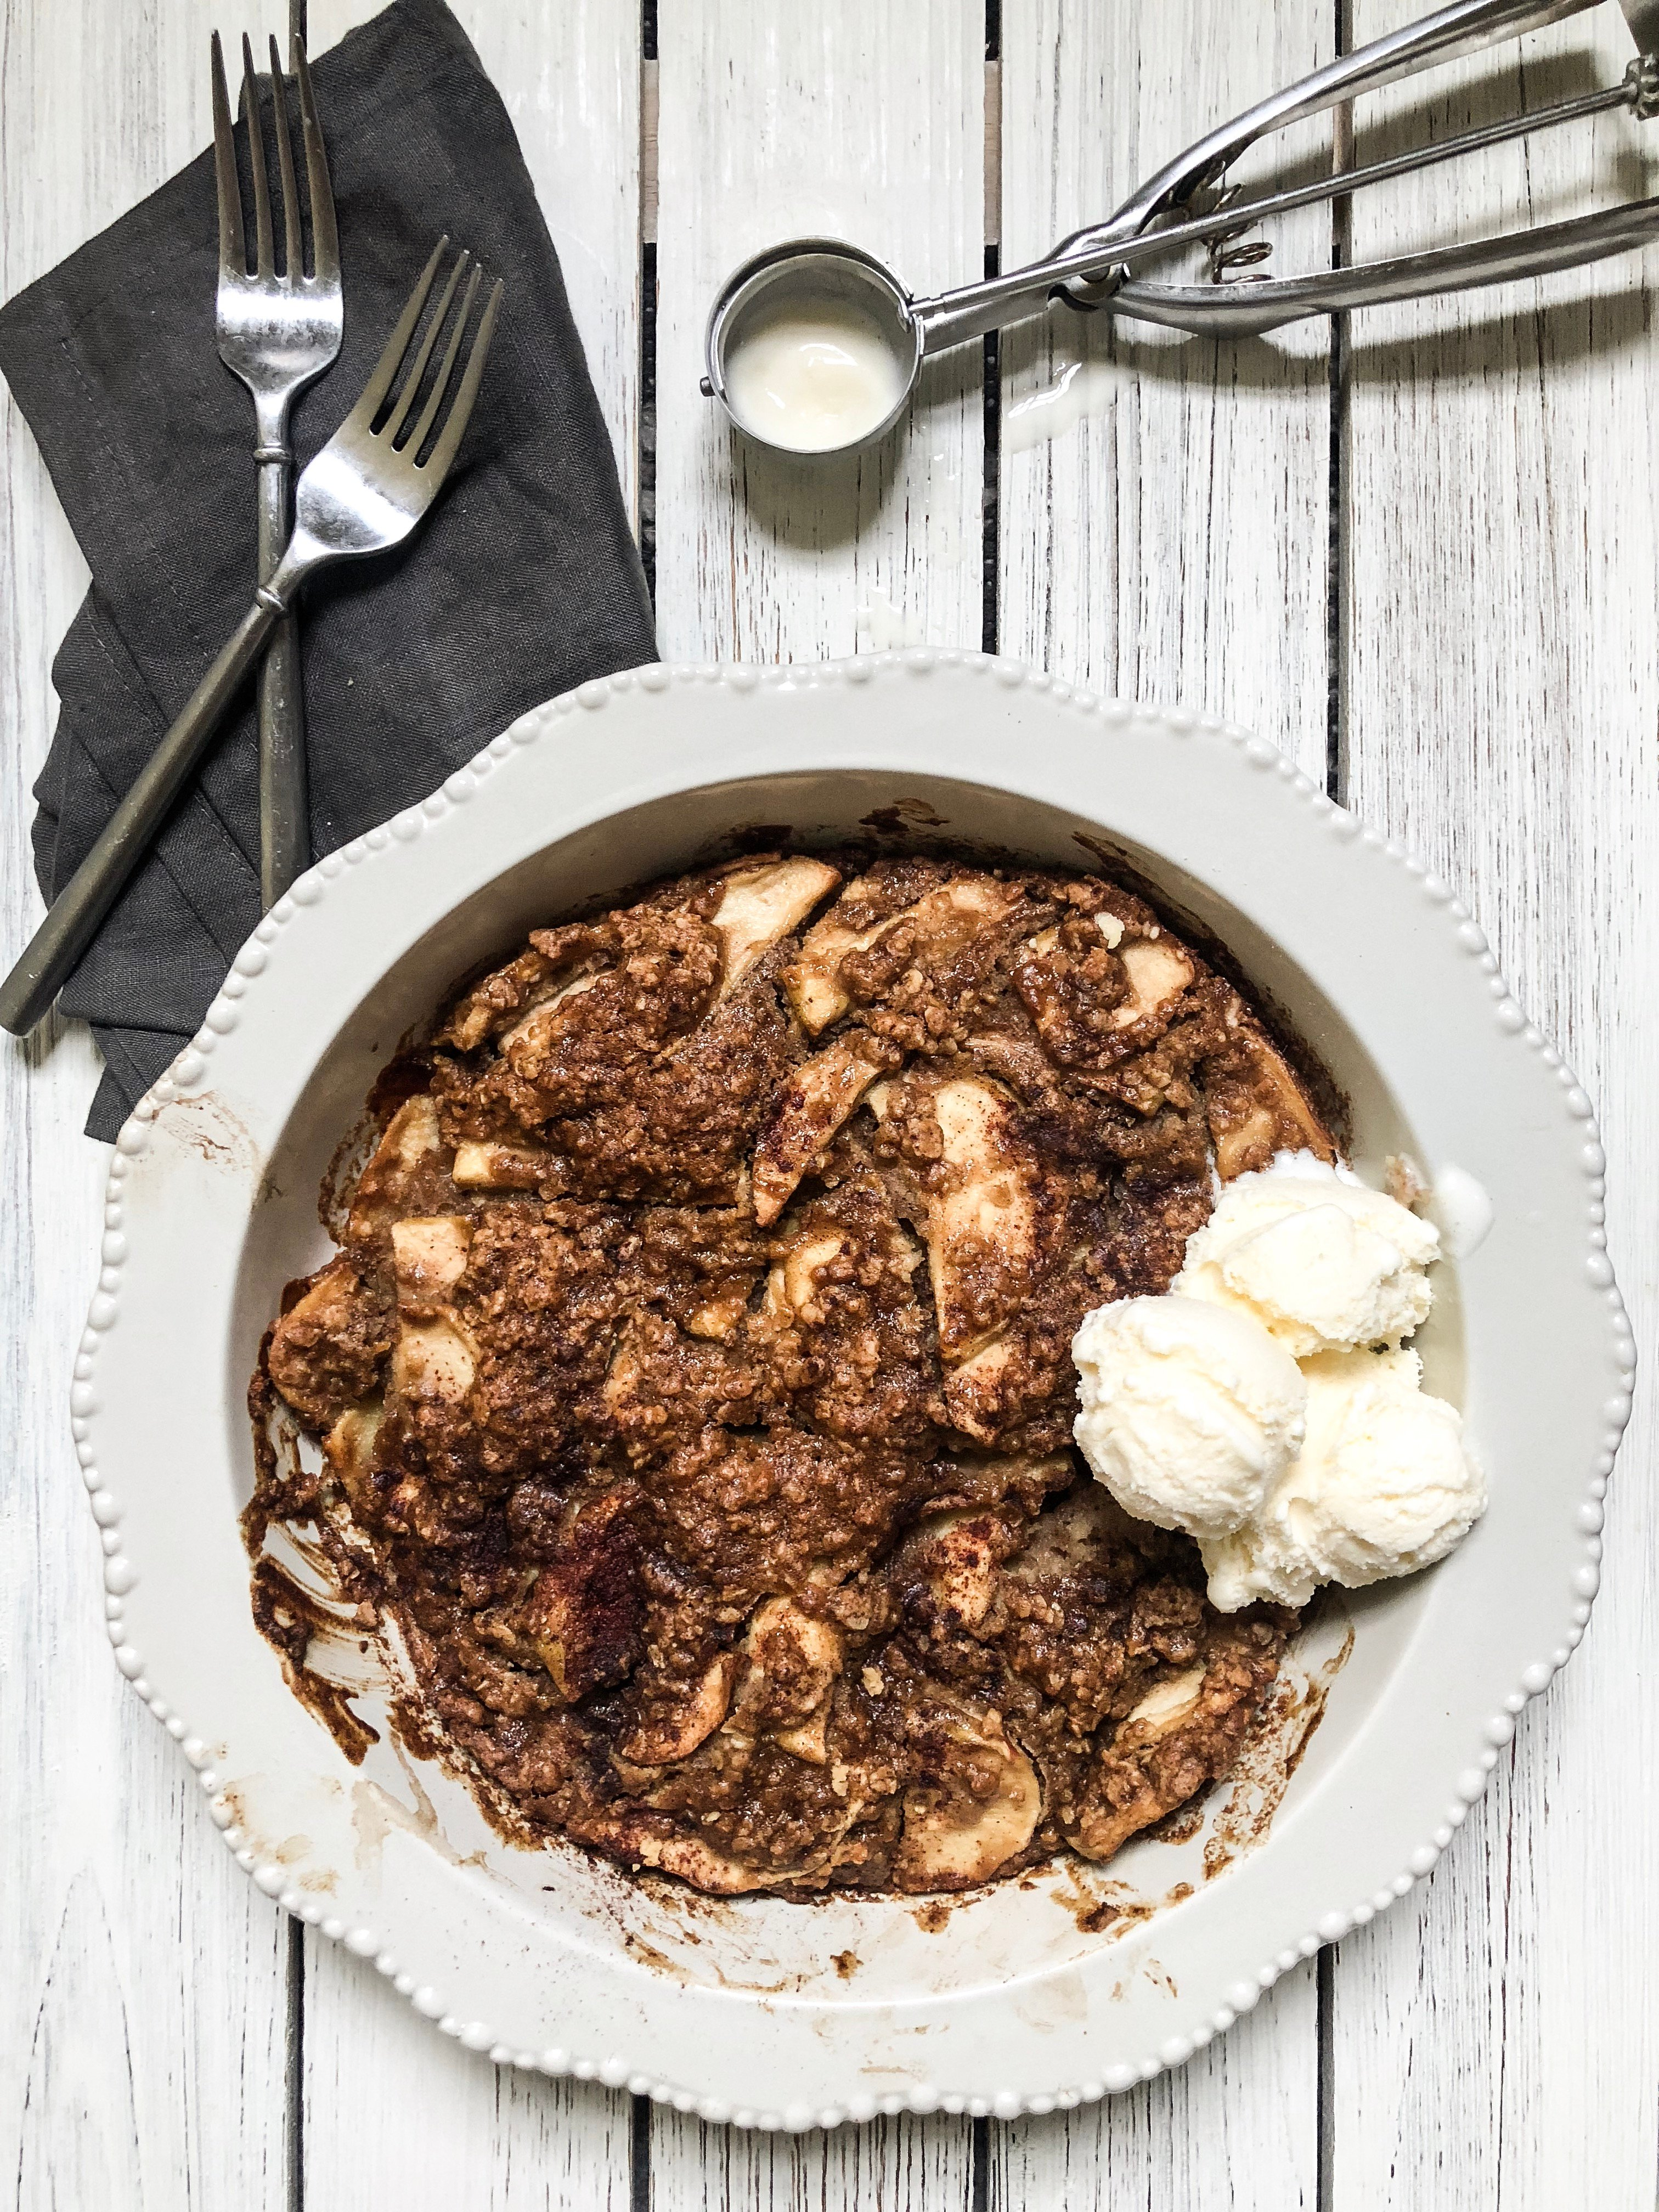 a pie plate filled with Apple Crisp with crunchy topping and ice cream, forks and spoons.